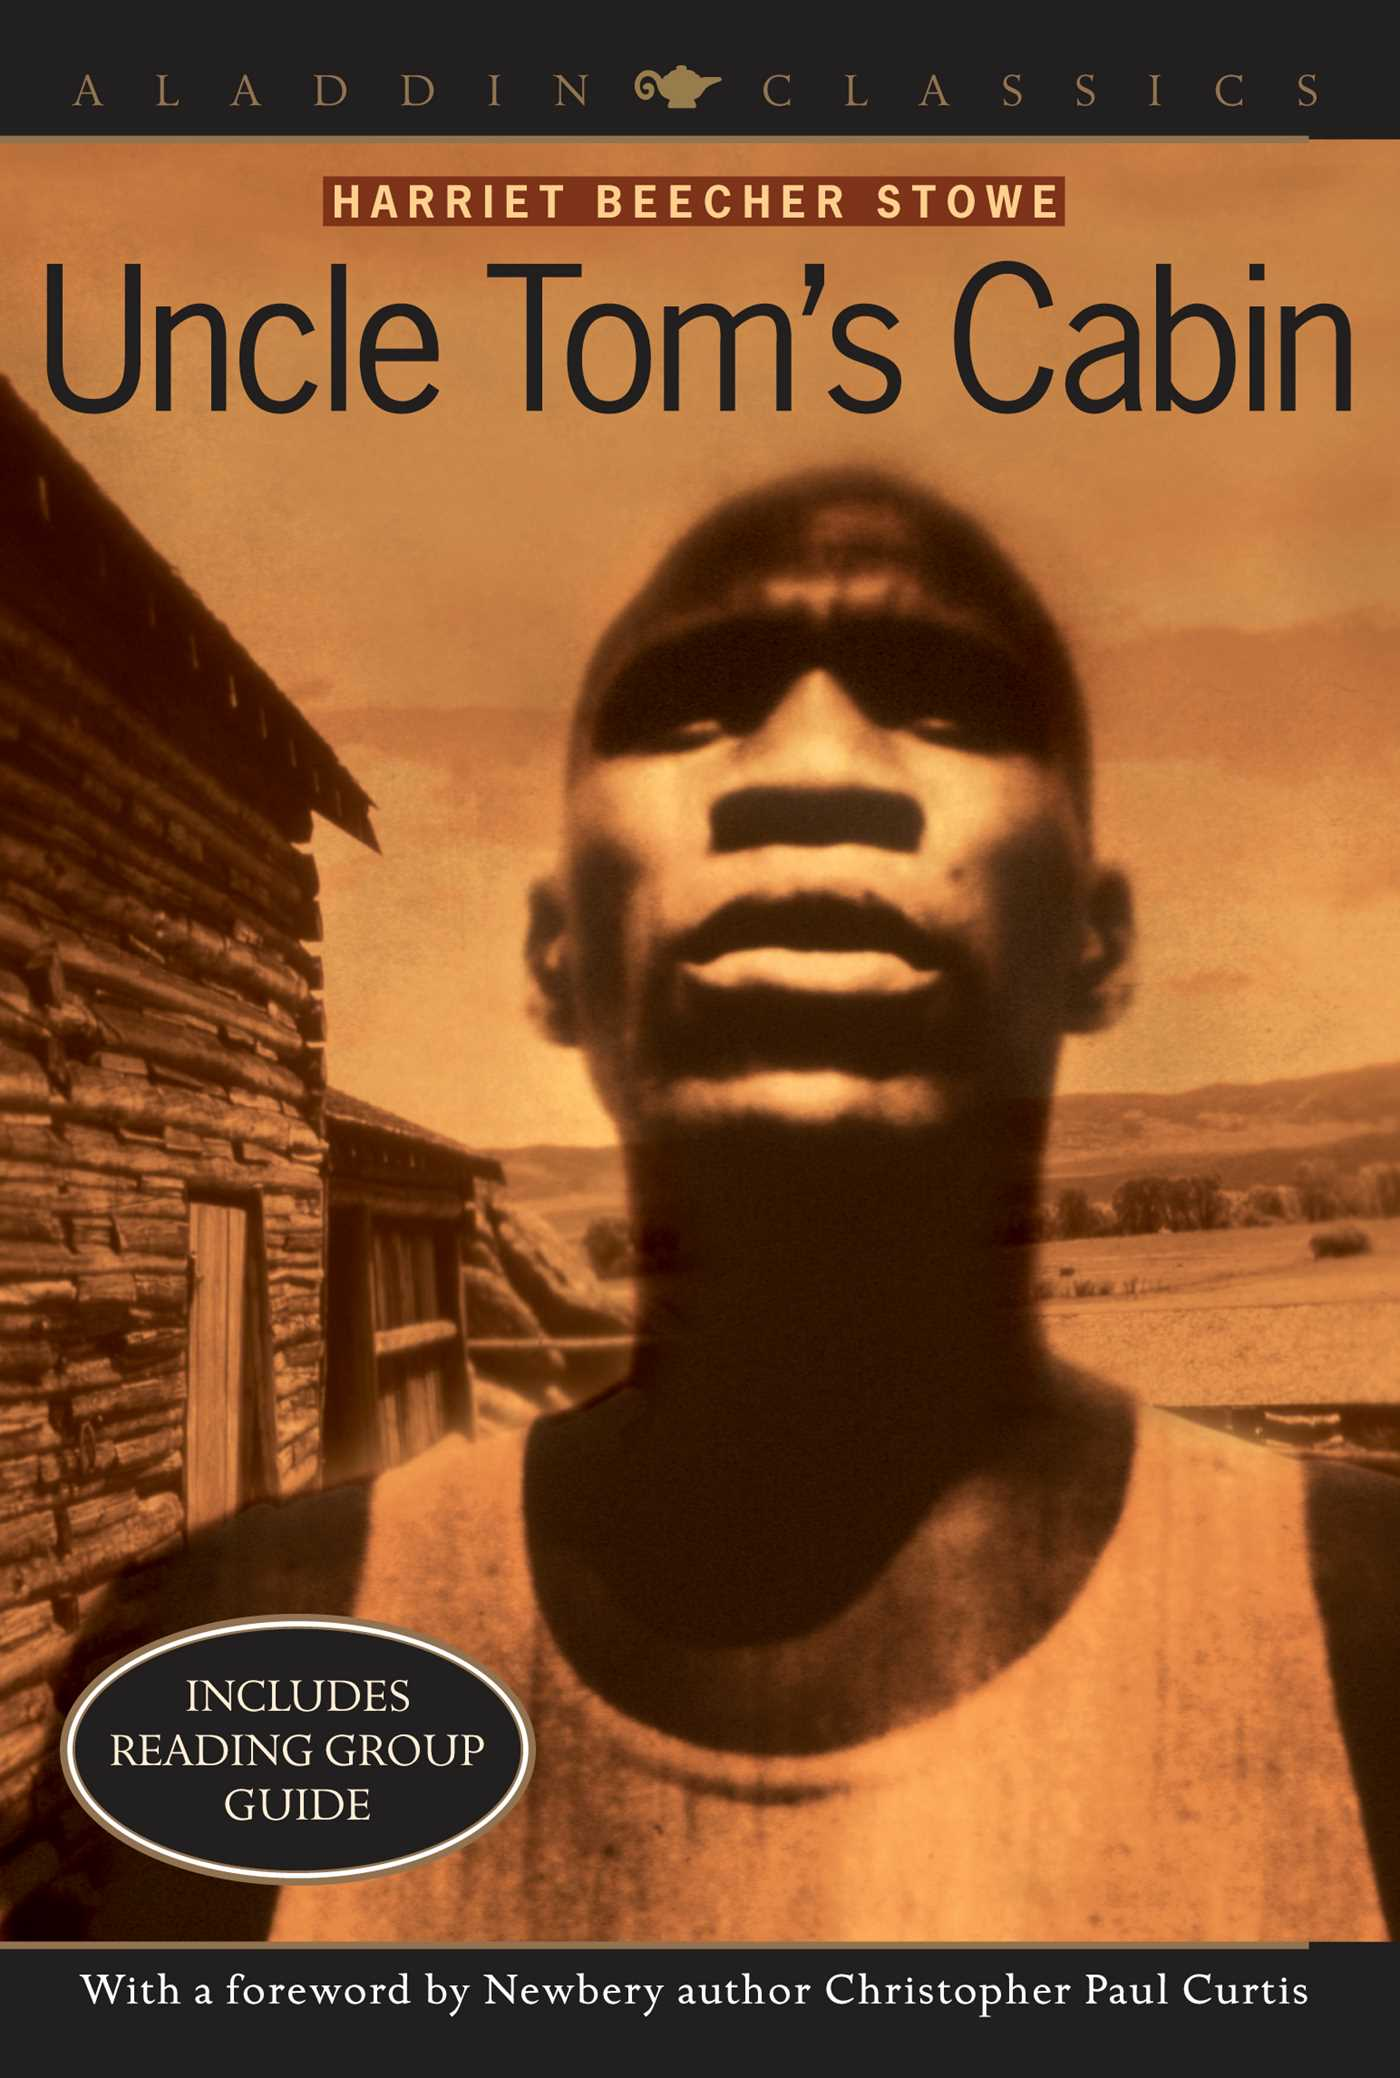 an analysis of uncle toms cabin by harriet beecher stowe The victory, page 1: read uncle tom's cabin, by author harriet beecher stowe page by page, now free, online.